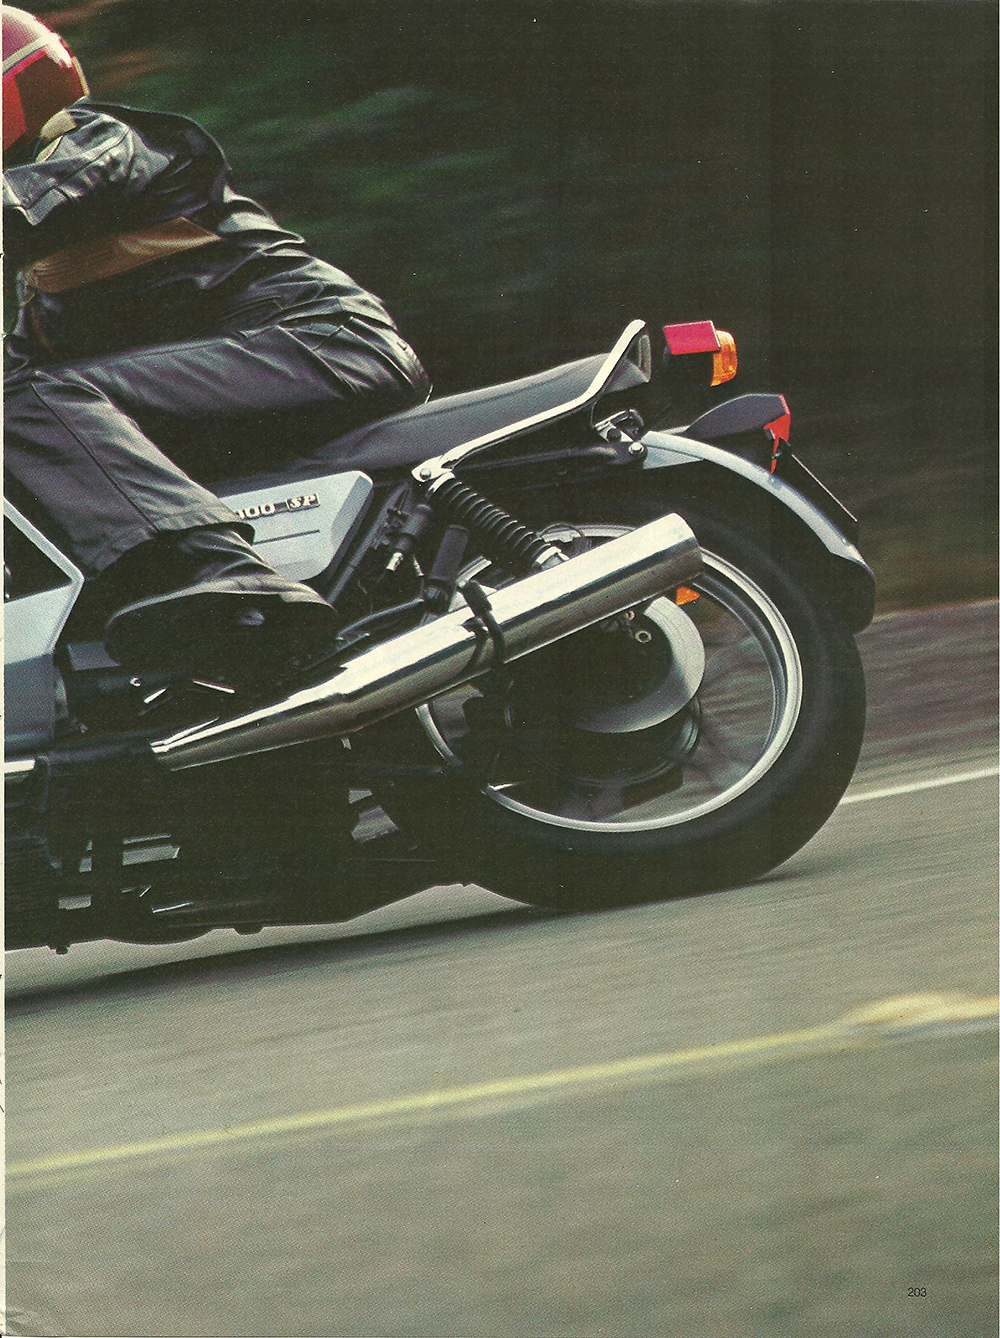 1979 Moto Guzzi 1000 SP road test 02.jpg